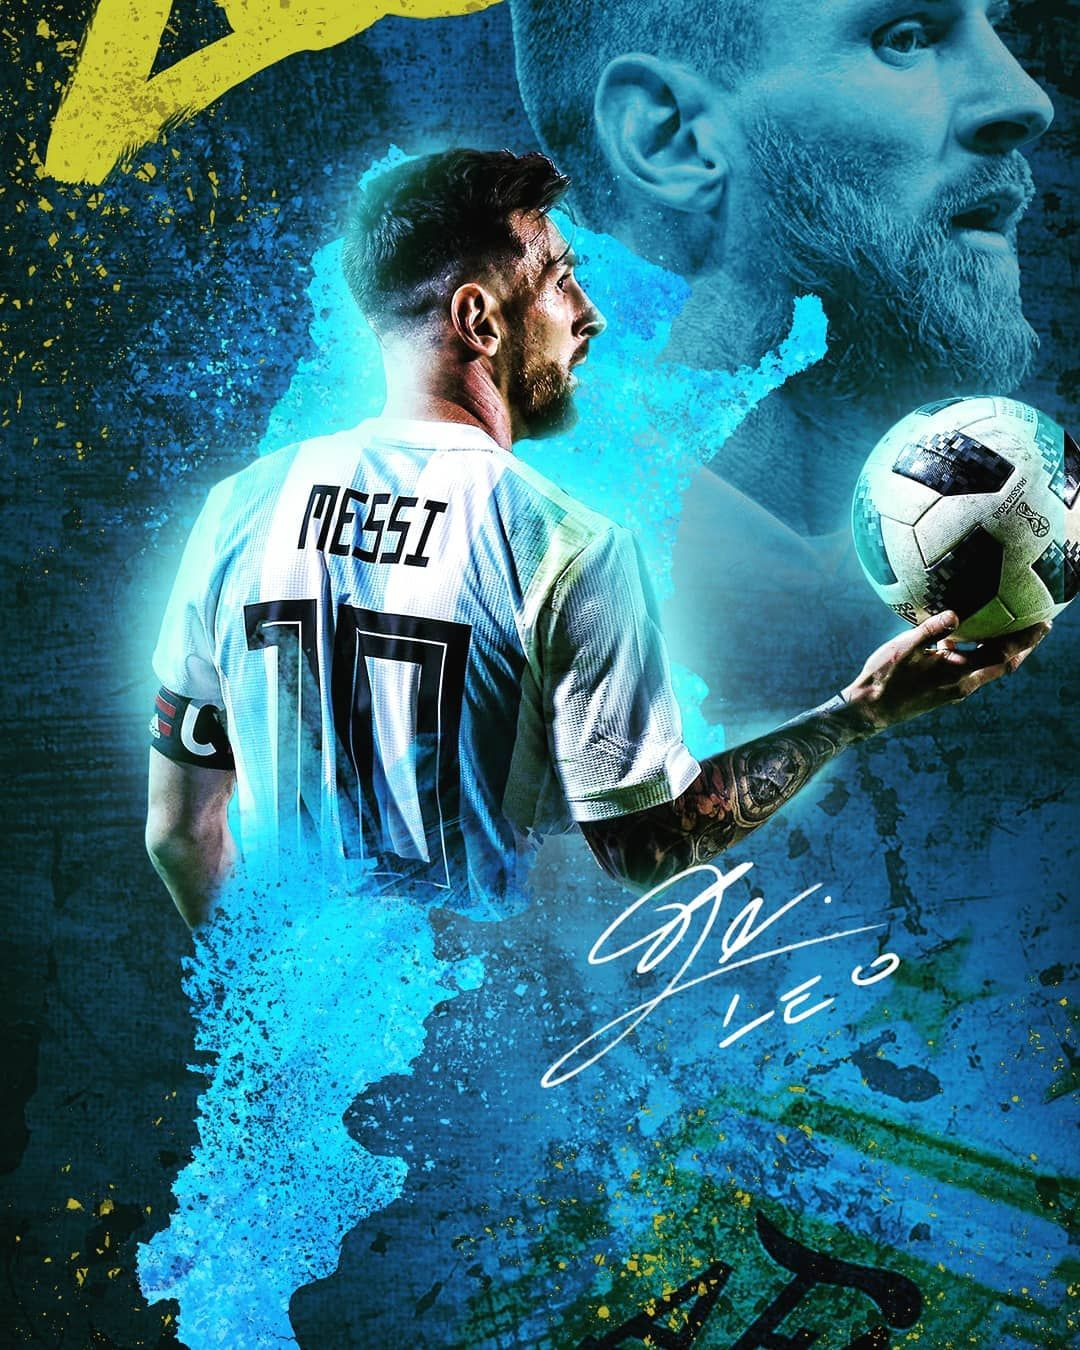 One Last Shot At That Elusive Trophy Worldcup Messi Argentina Football Soccer Fifa Worldcup2018 Messi Leonel Messi Messi 10